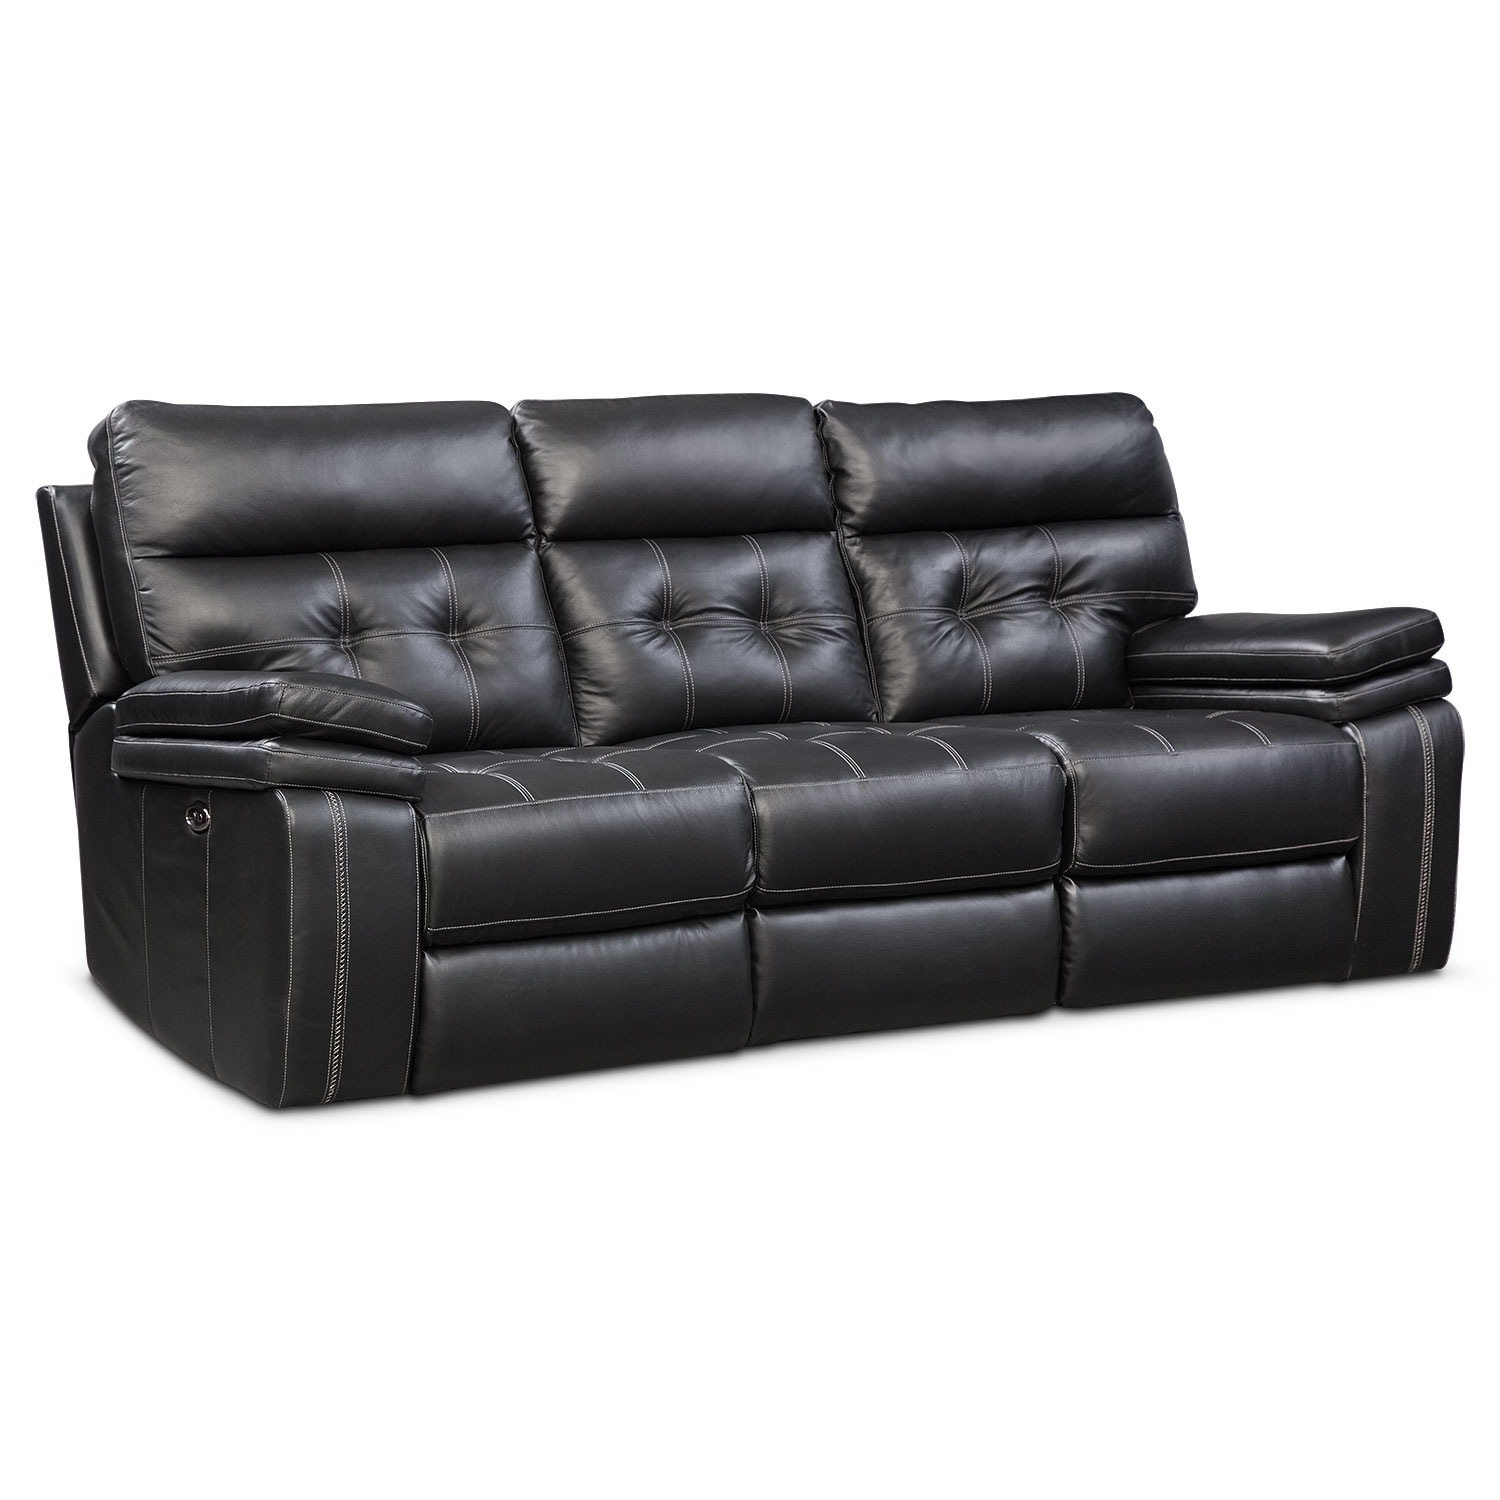 Brisco power reclining sofa reclining loveseat and glider Power reclining sofas and loveseats